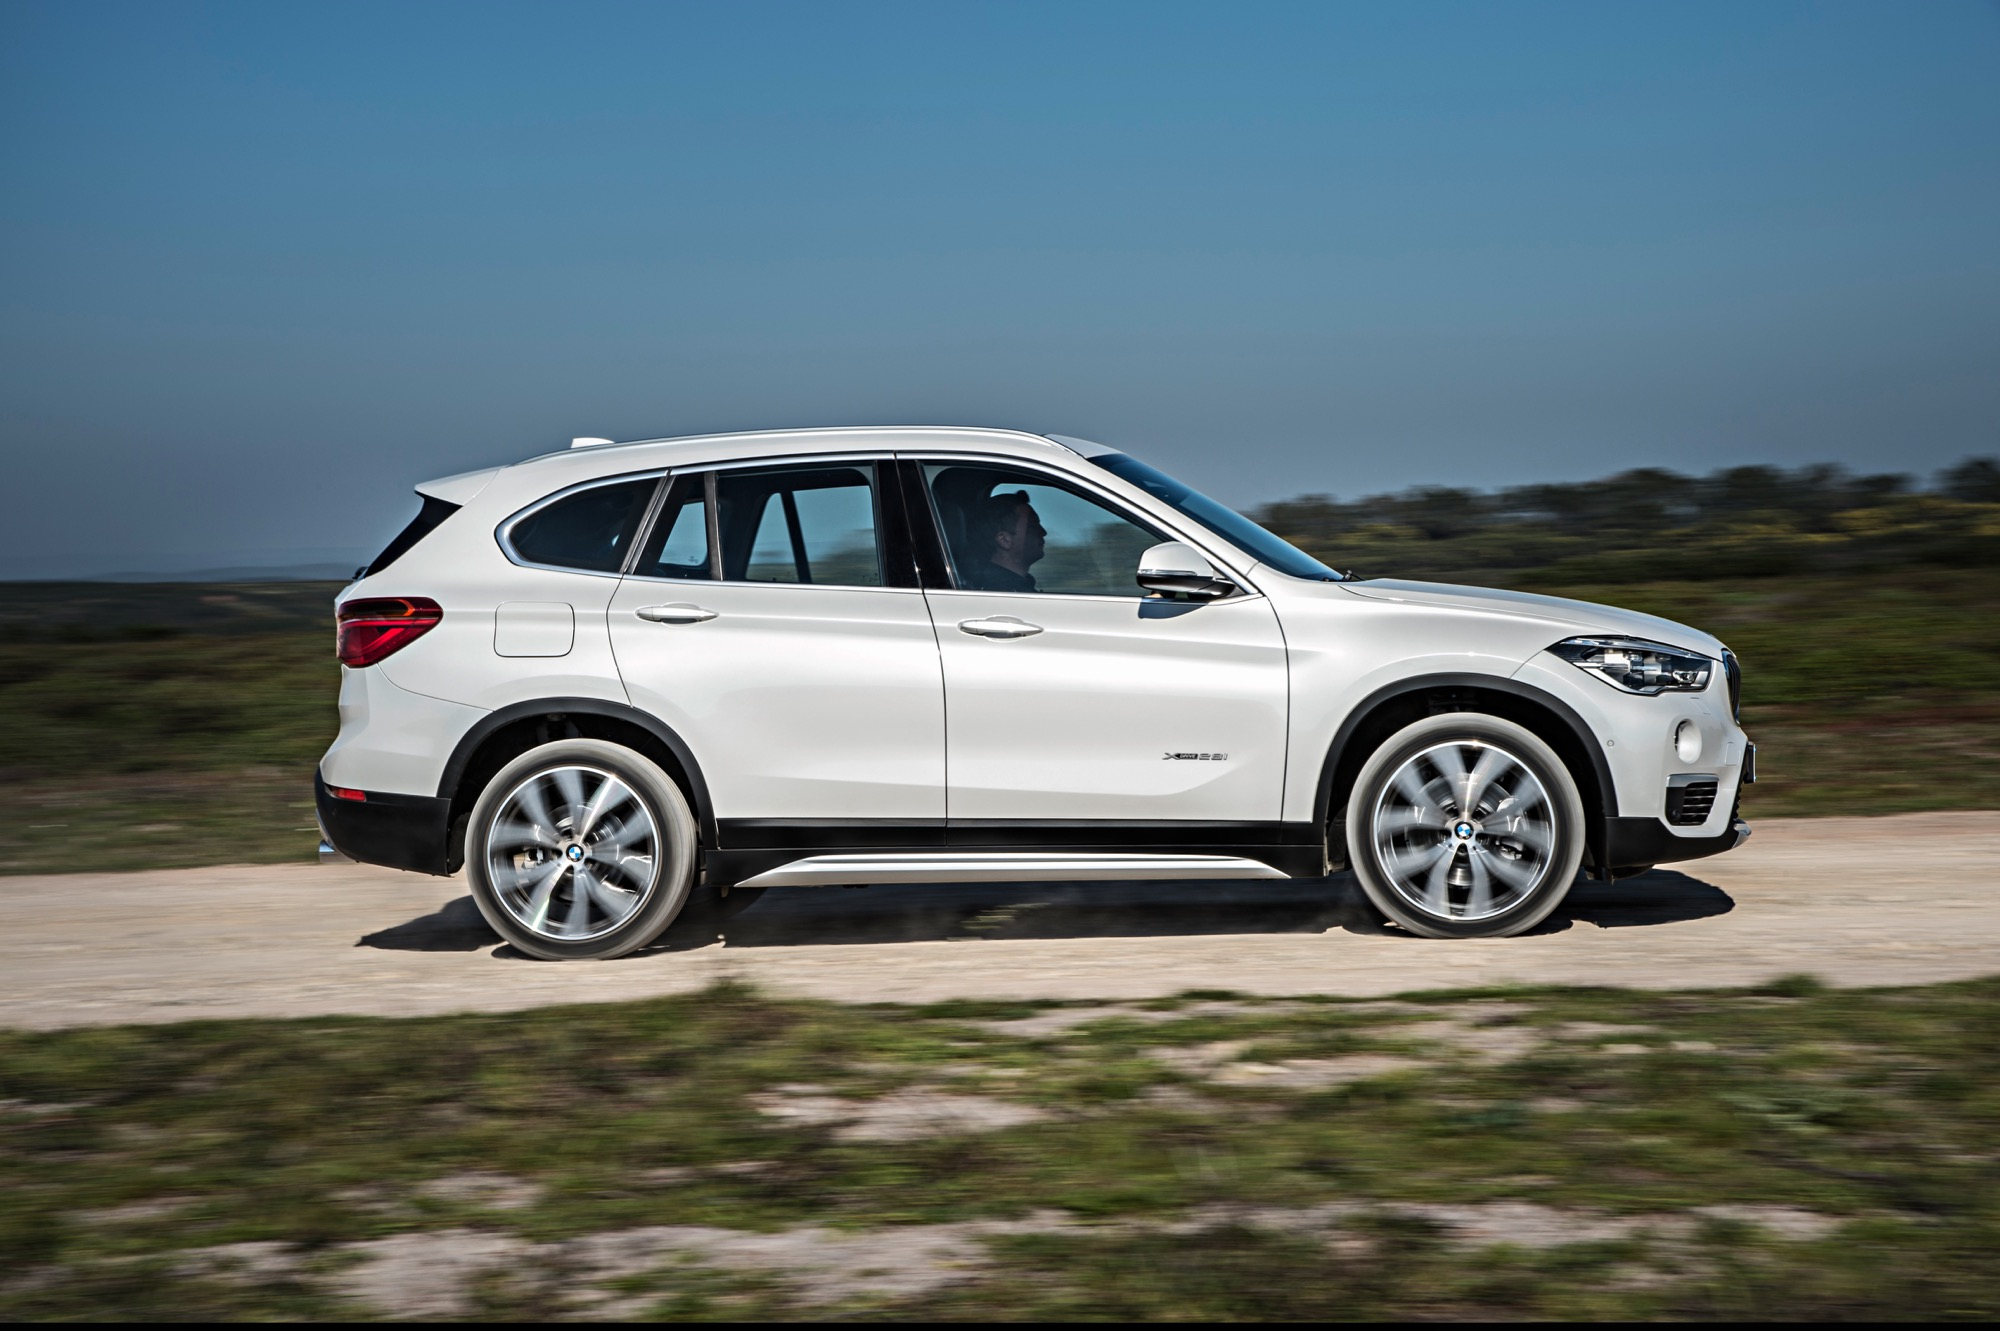 pictures official revealed x info magazine bmw and new cool by crossover dubbed news car suv first the specs